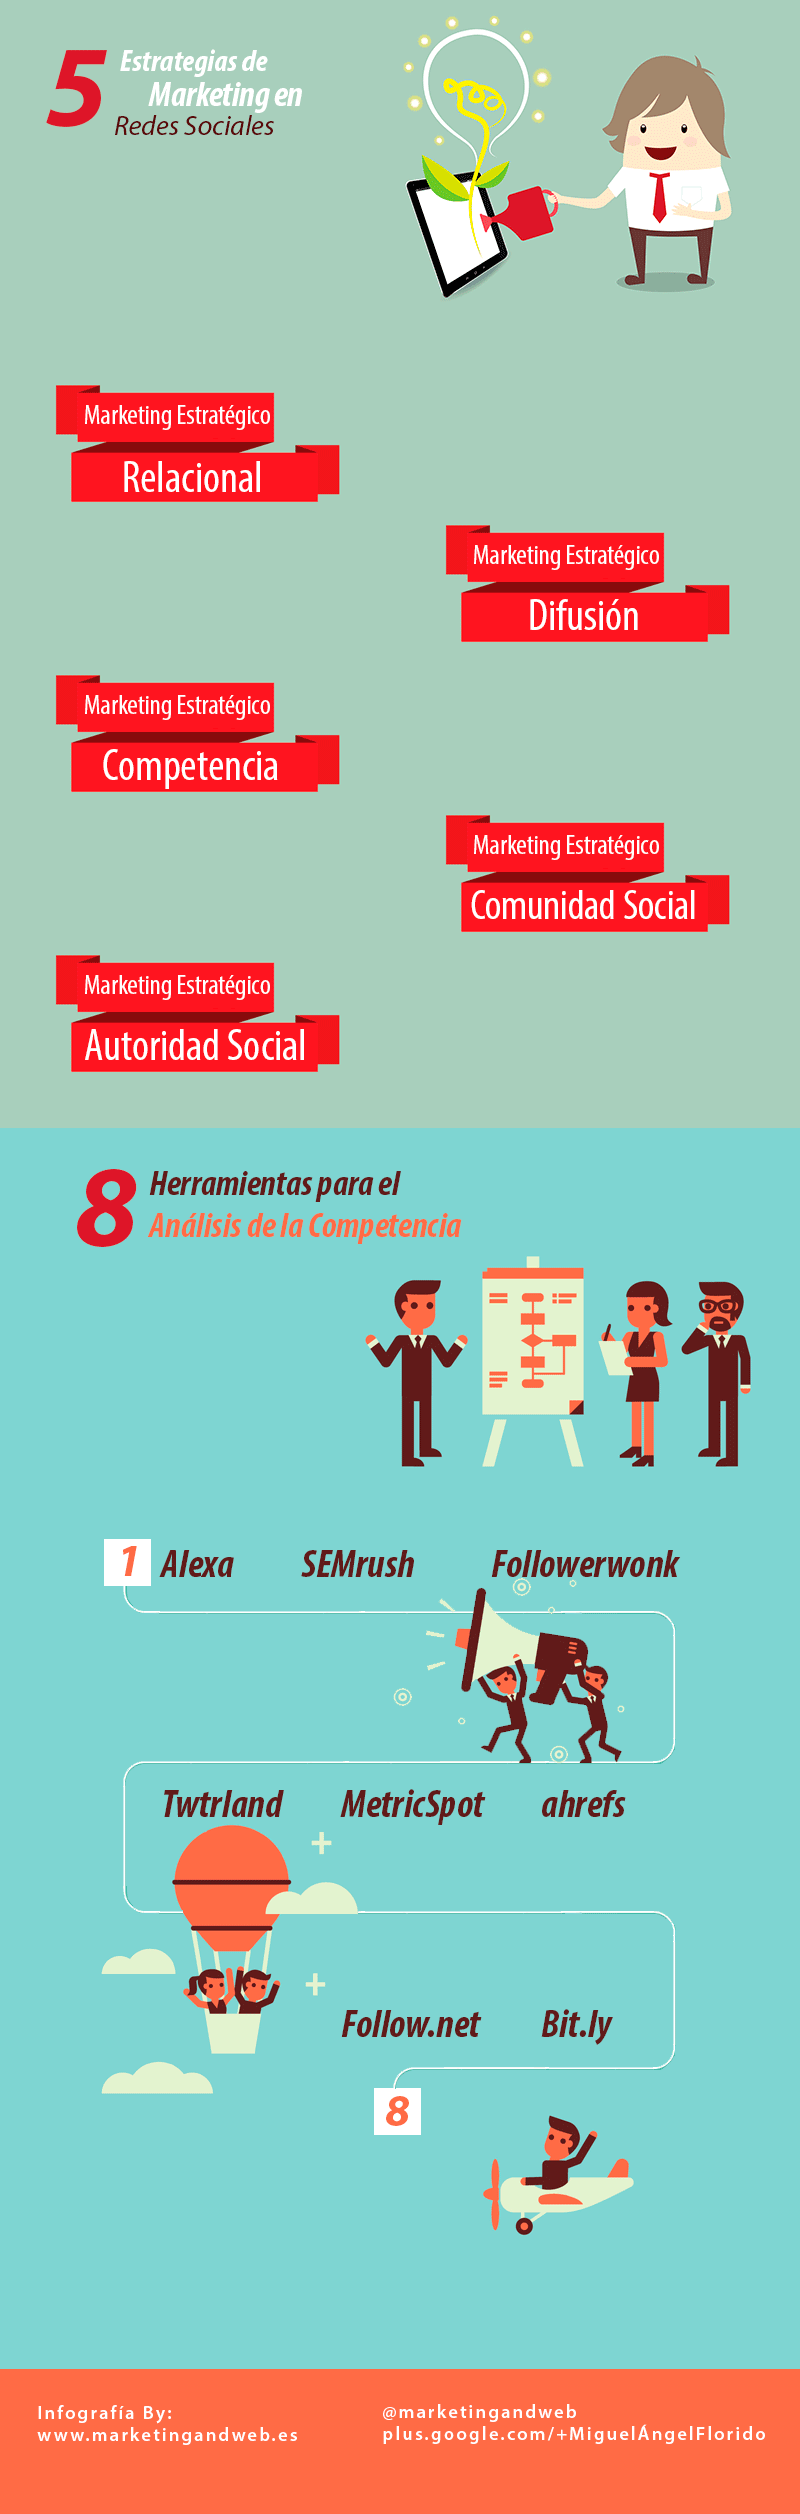 Marketing Estratégico en Redes Sociales infografía